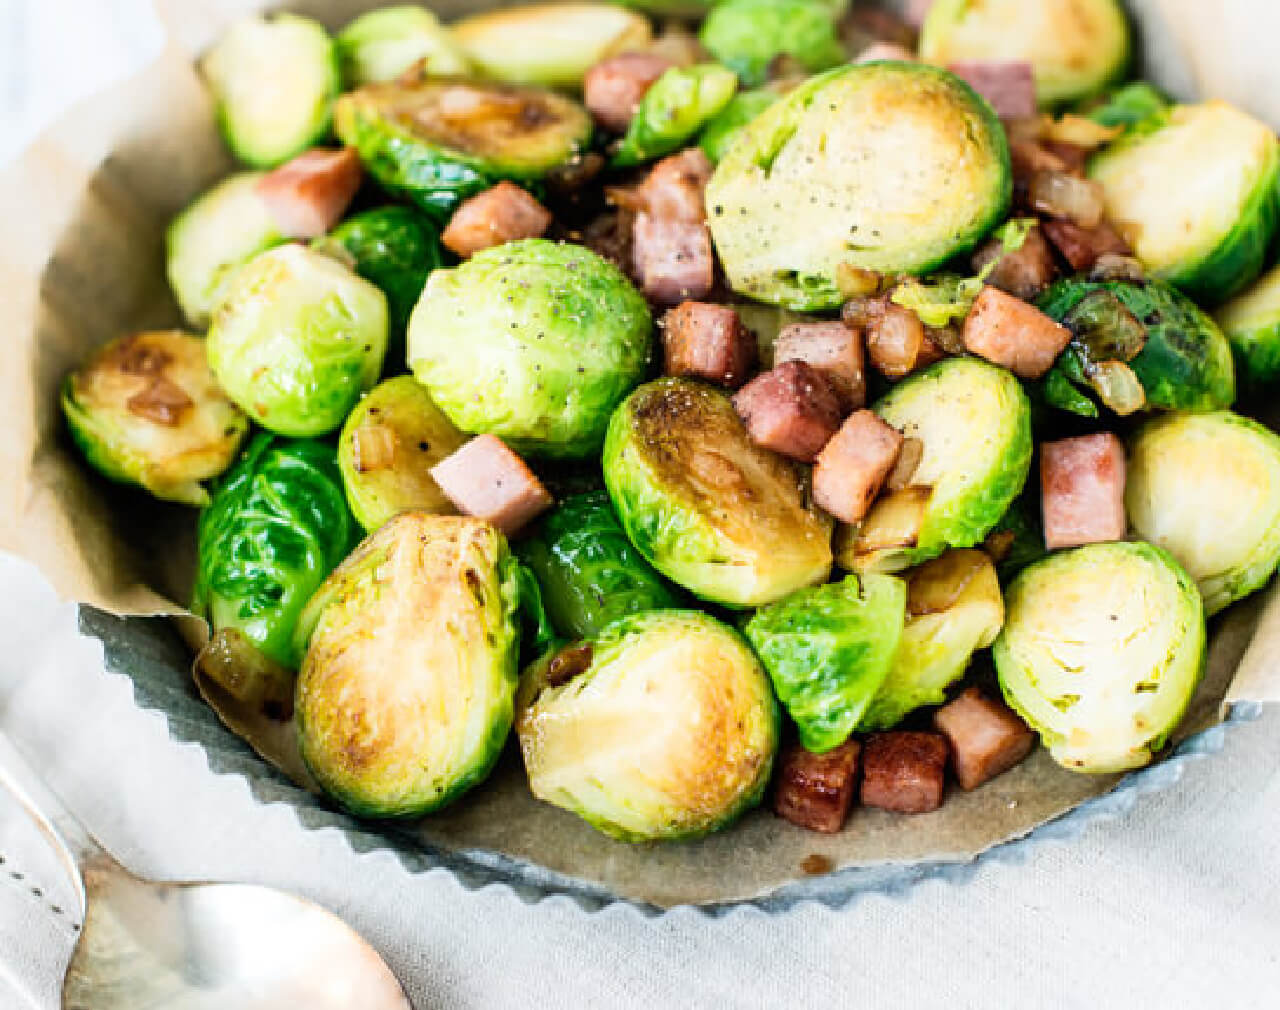 Stir-fried Brussel Sprouts and Ham